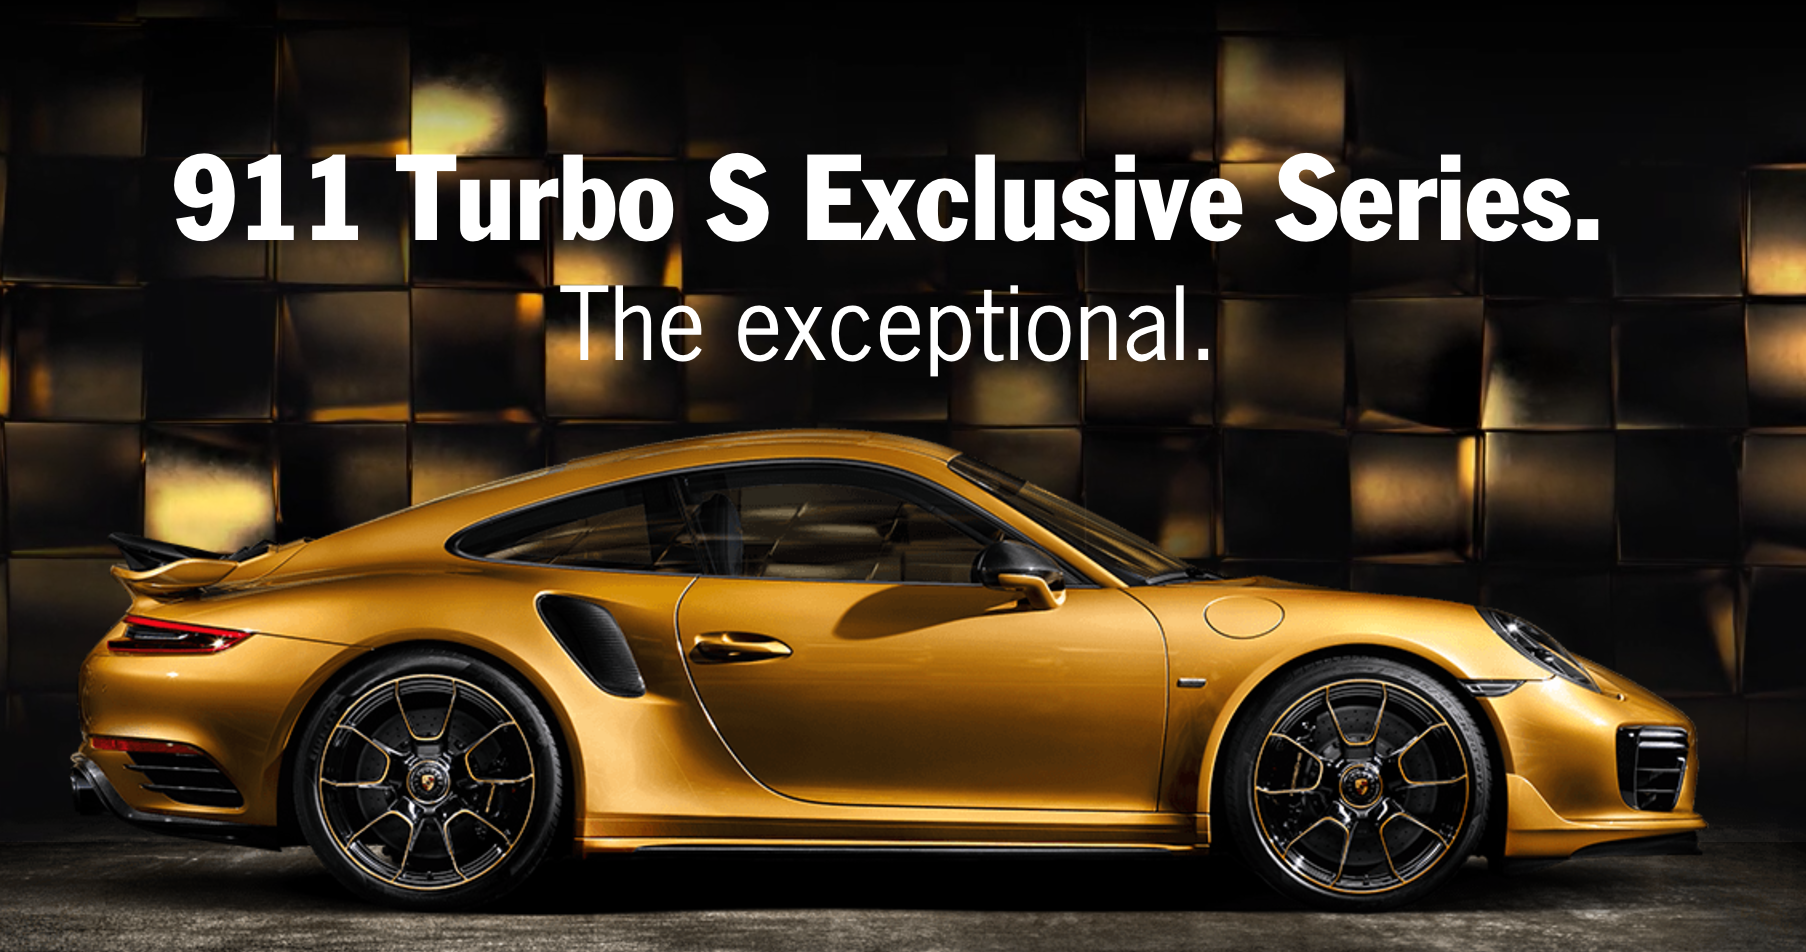 2017 Porsche 911 Turbo S Exclusive